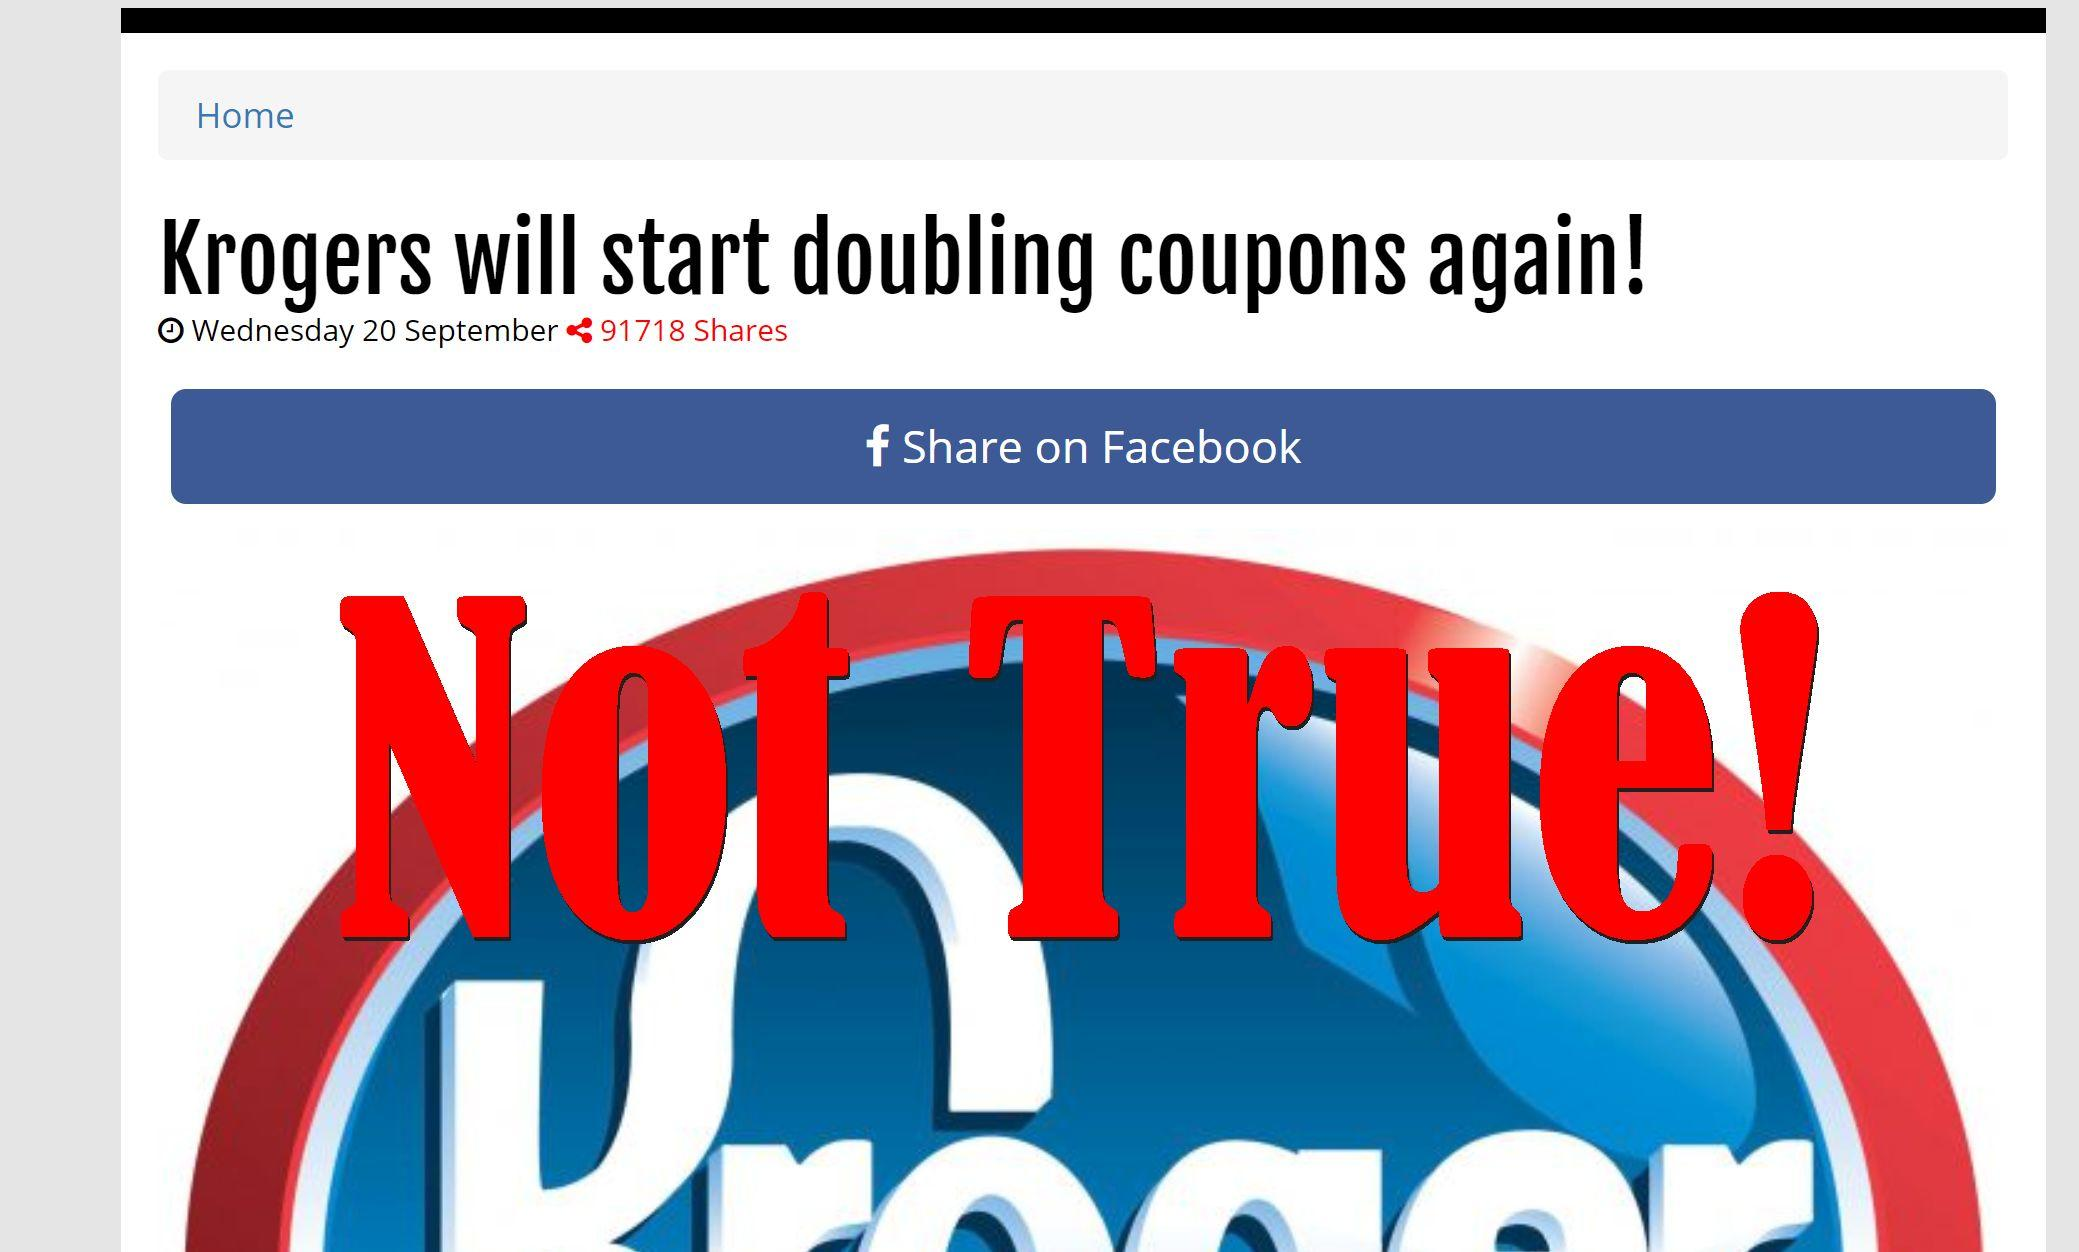 Fake News: Krogers Will NOT Start Doubling Coupons Again